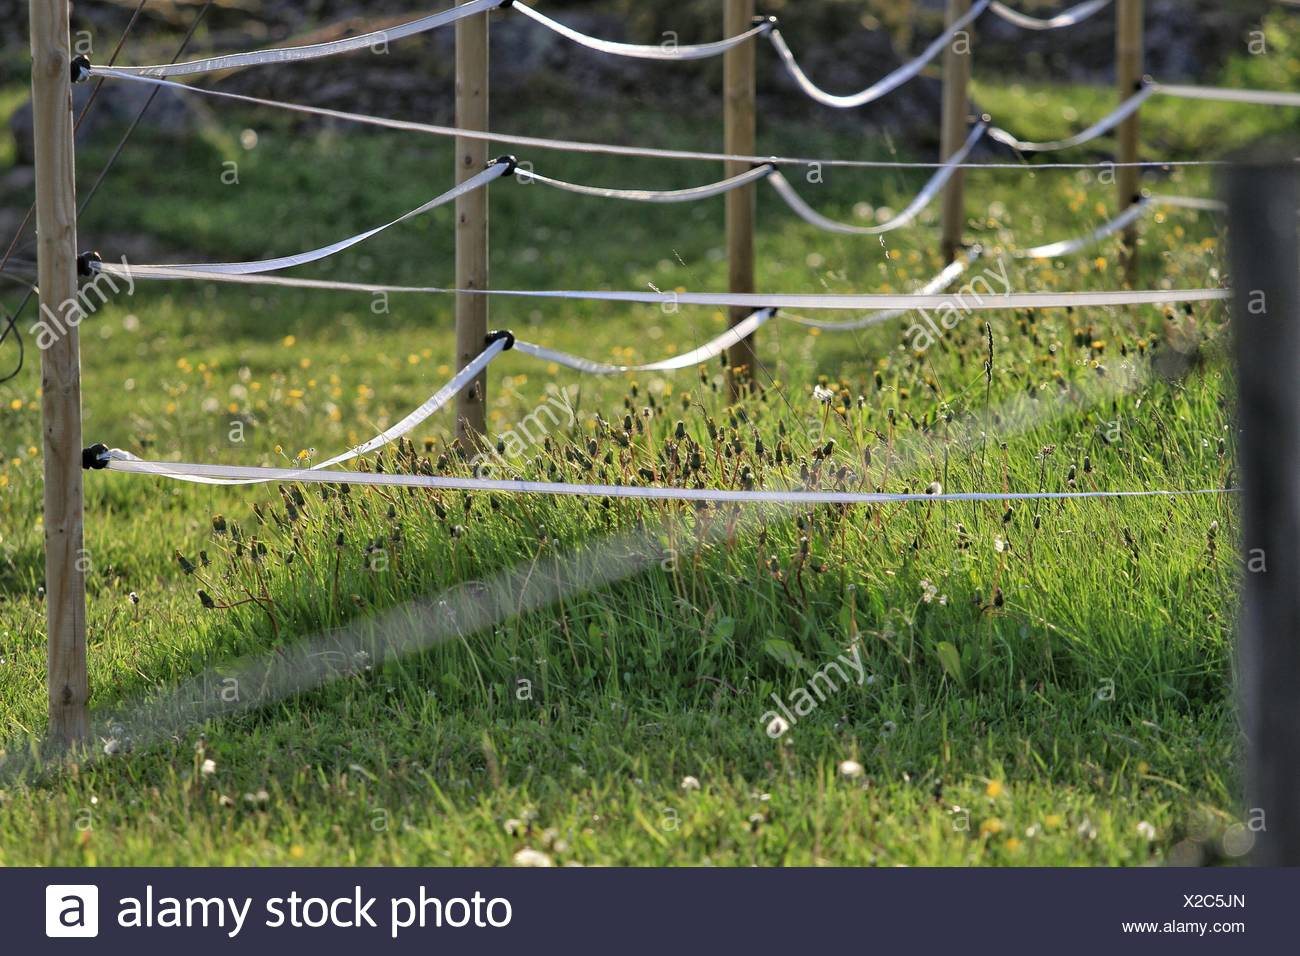 wire fence covering. Close-Up Of Fence Covering Grass - Stock Image Wire Fence Covering